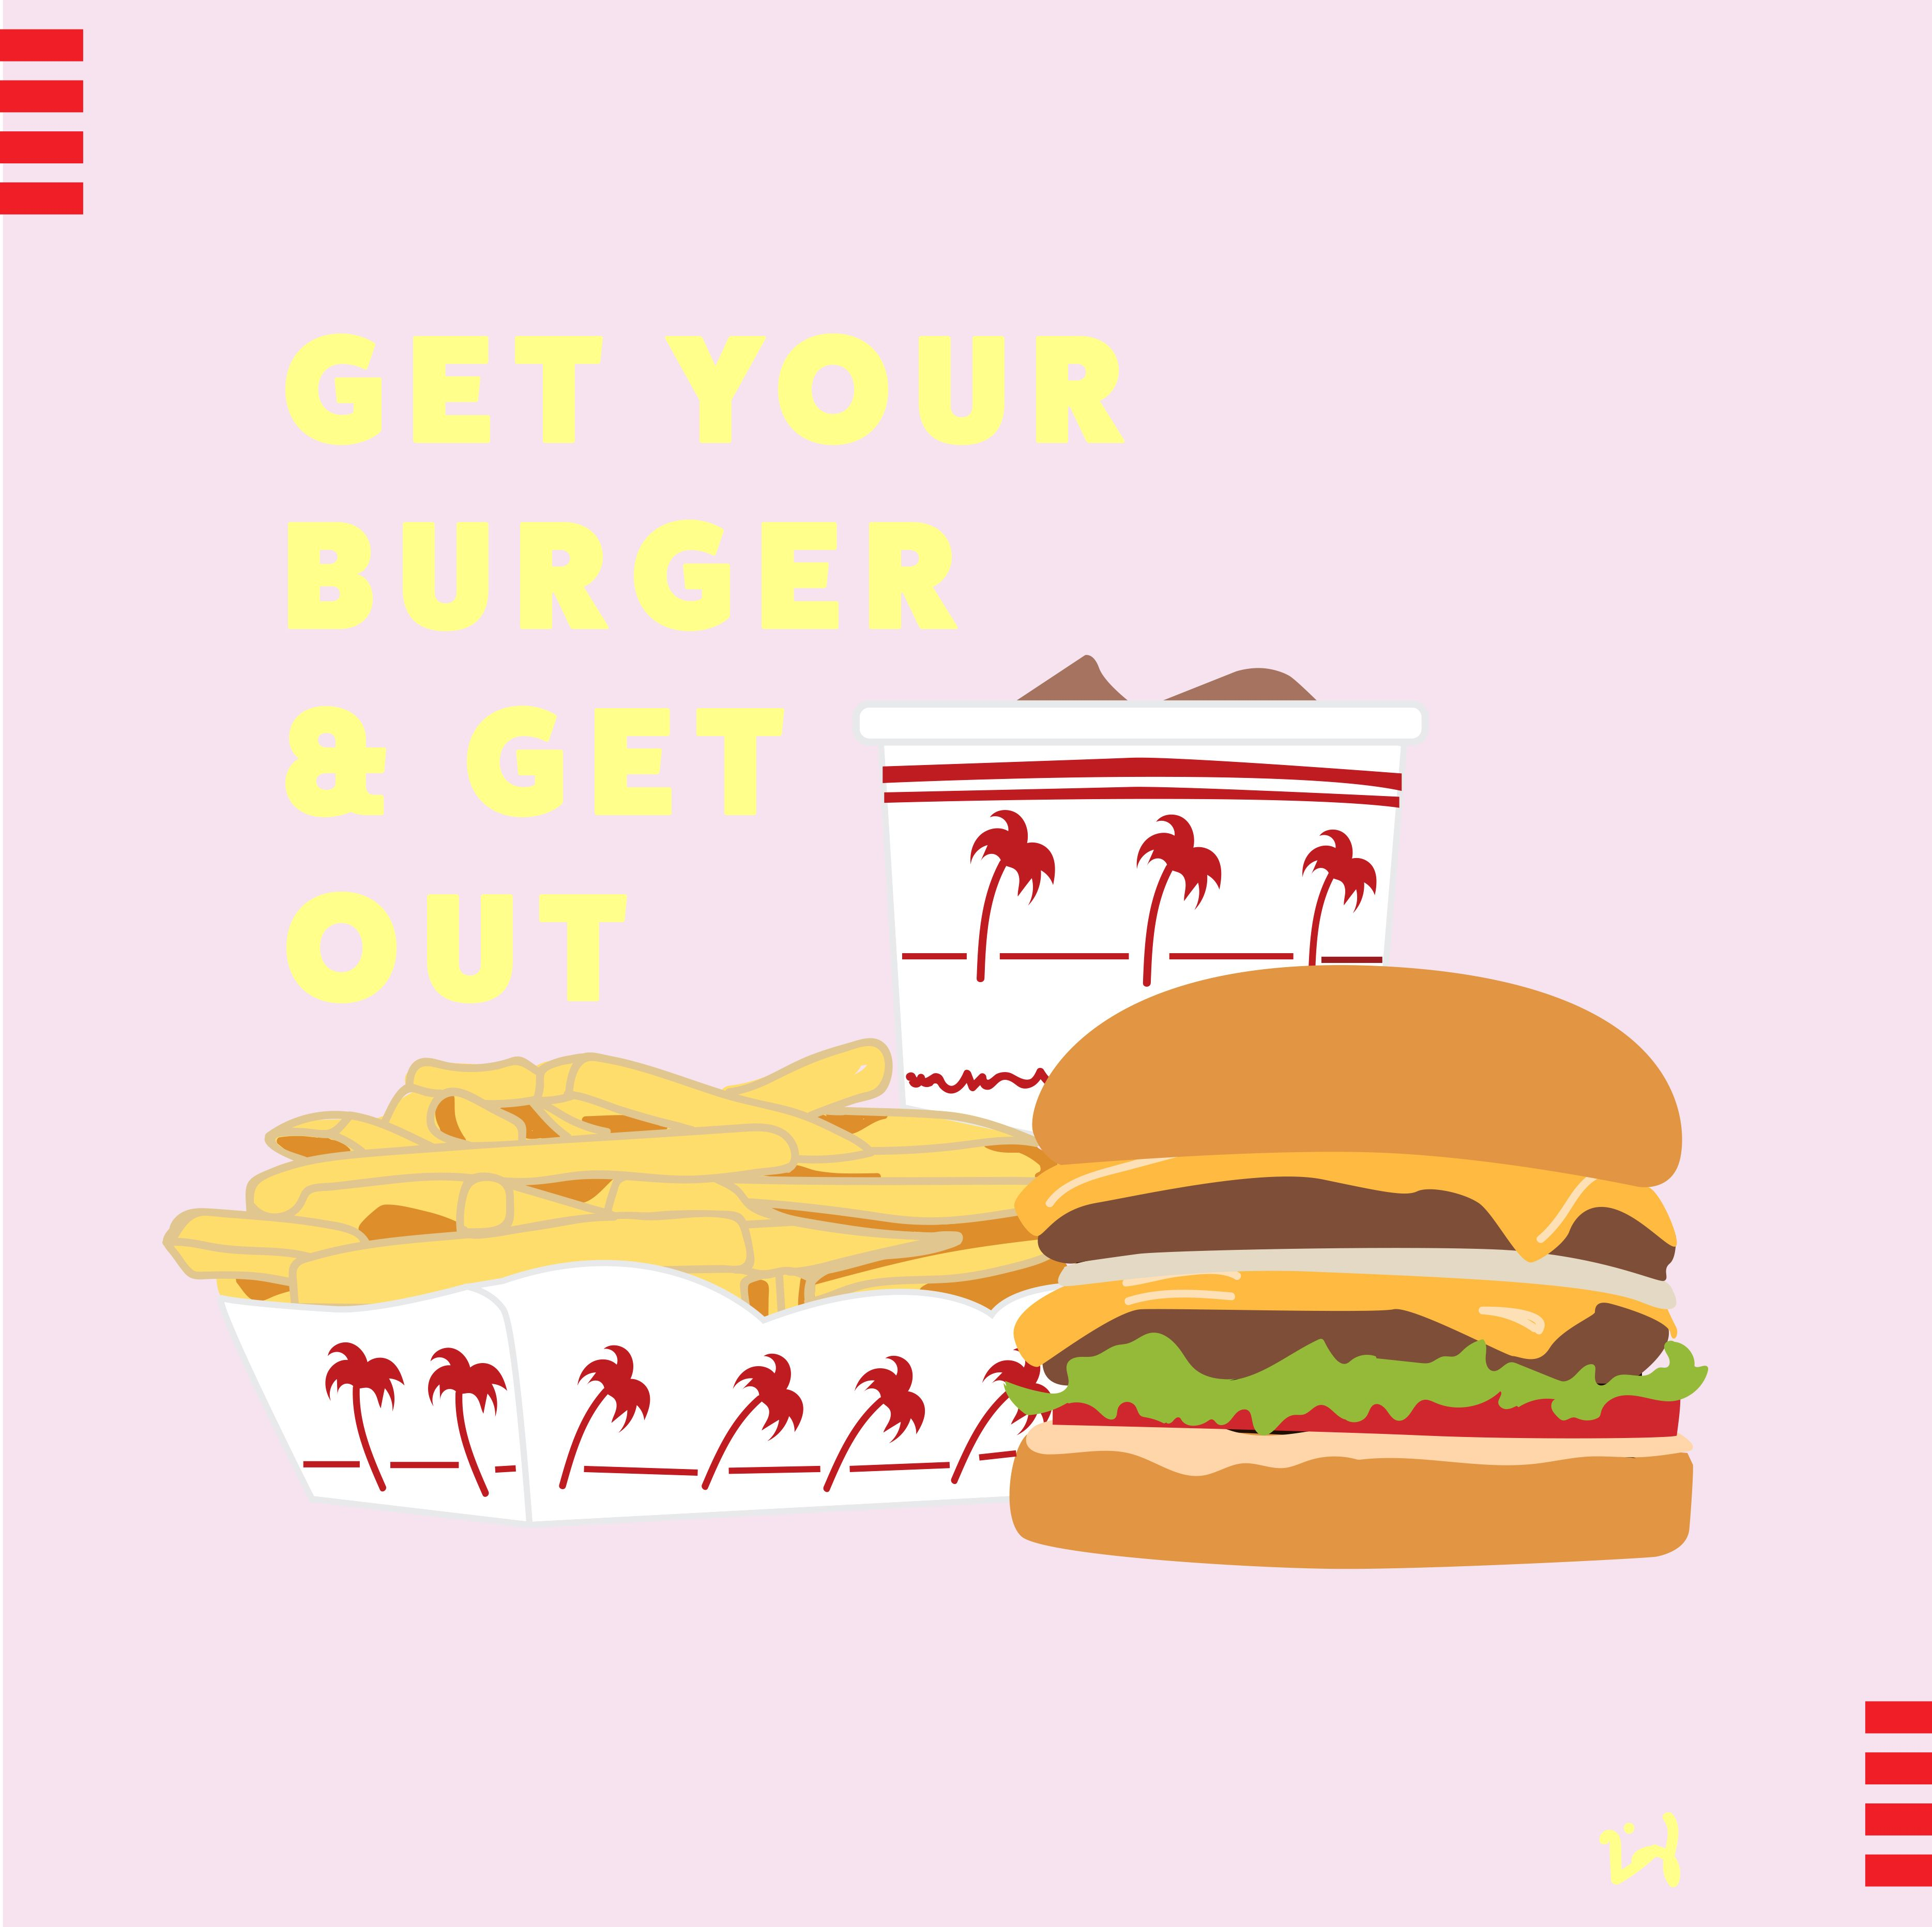 NEW IN-N-OUT BURGER ORIGINAL SIGN STICKER SO CALIFORNIA 2019